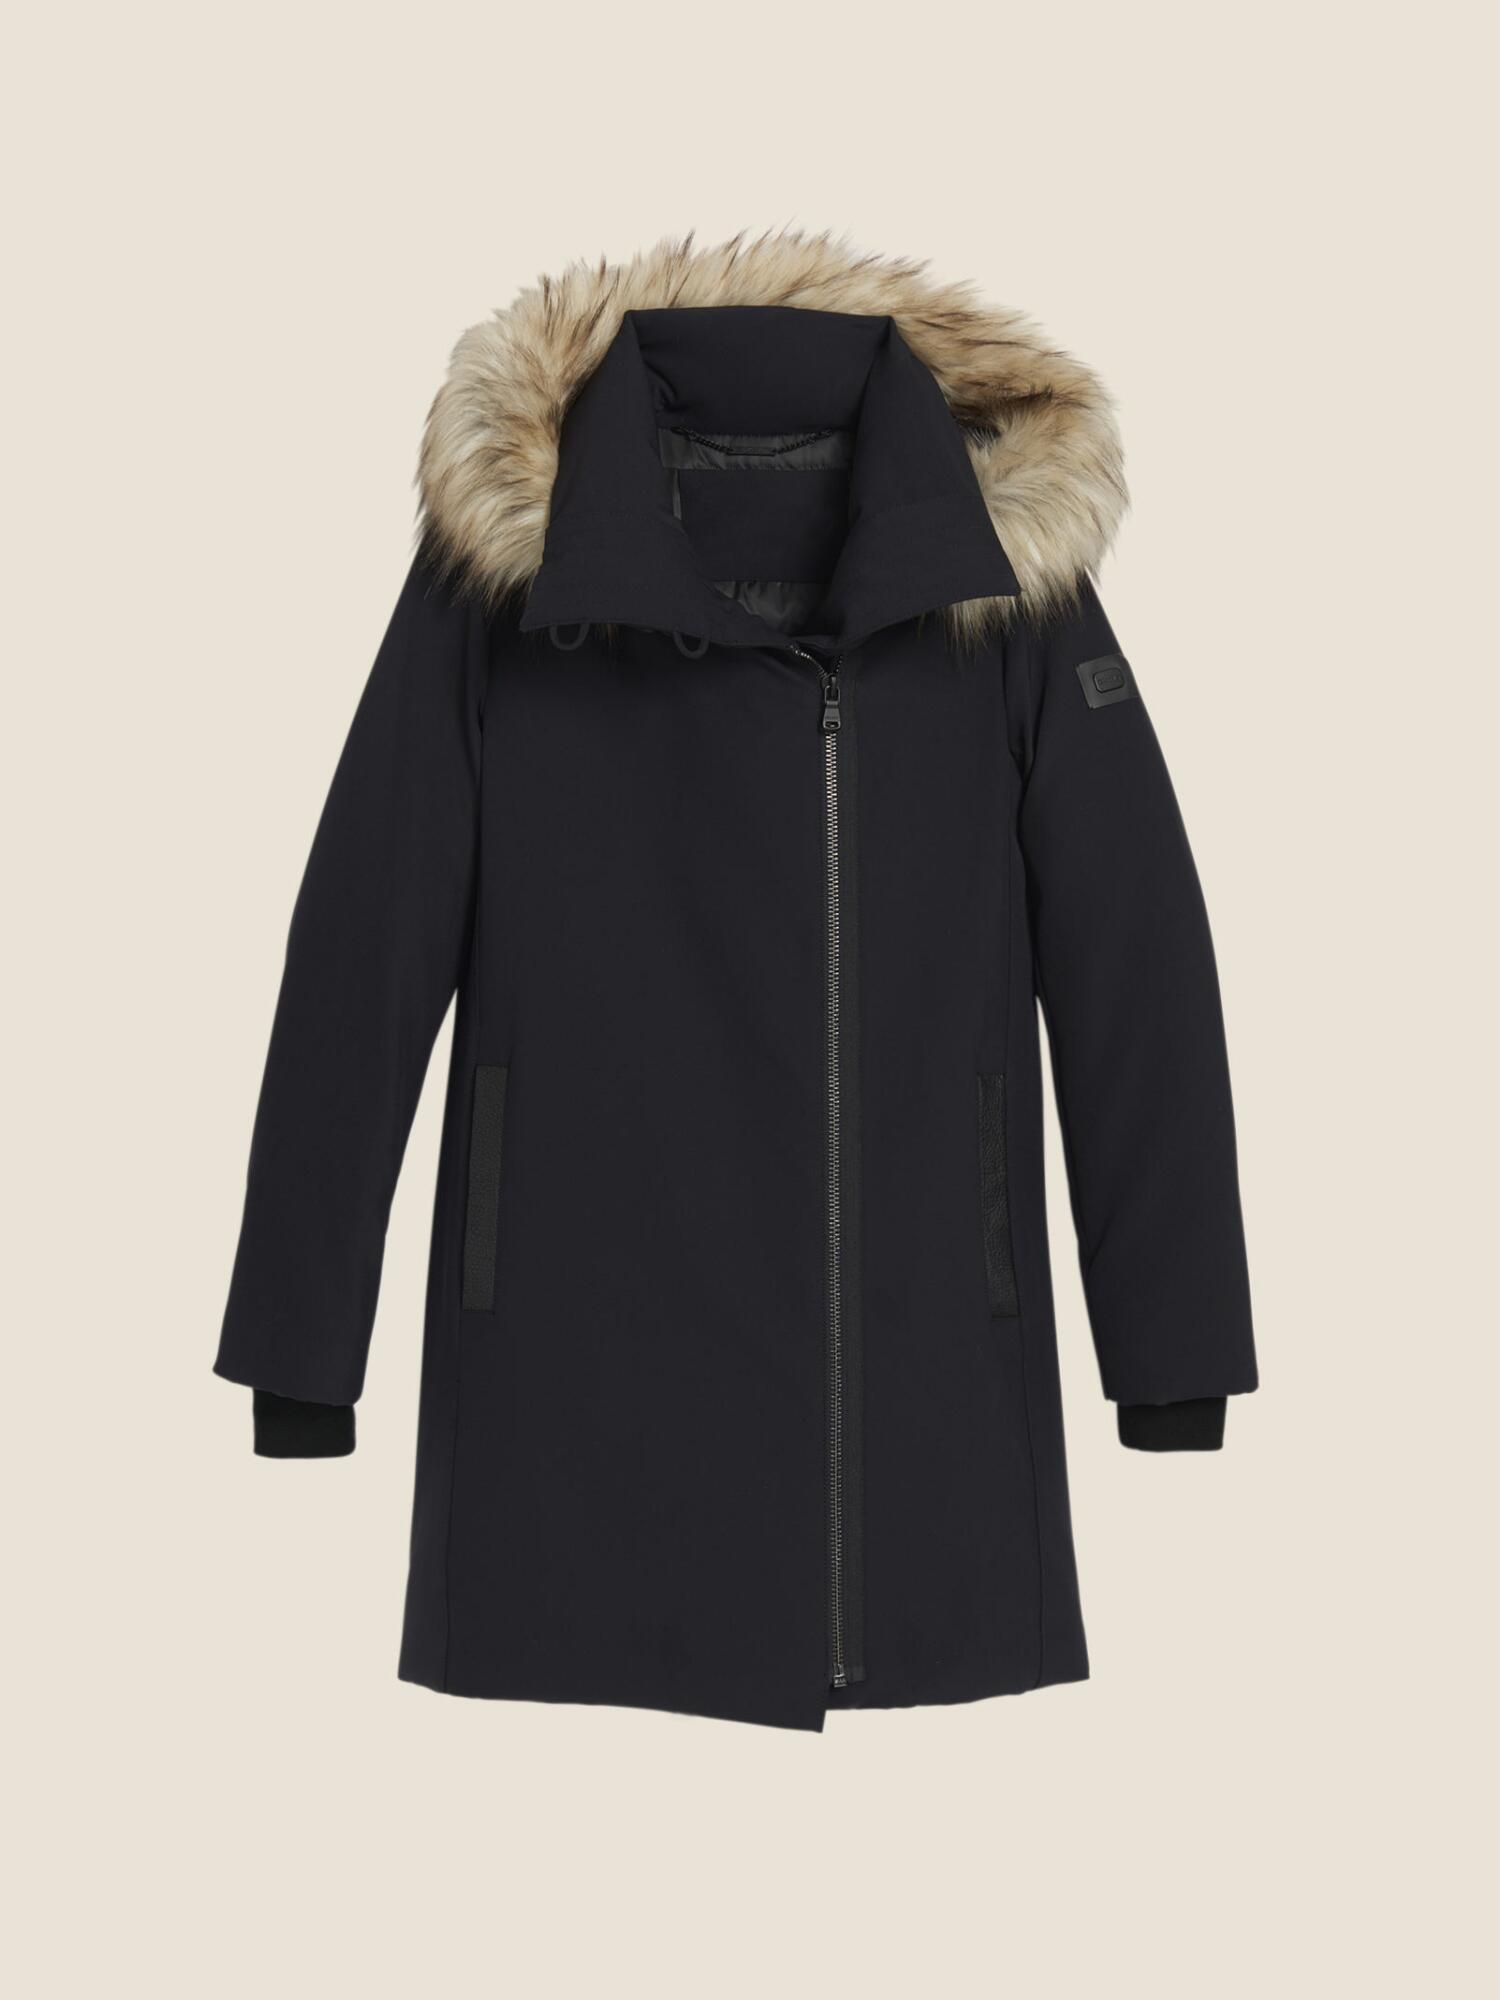 7570085753fc3 Donna Karan Nylon Puffer Coat With Faux Fur Trim In Black | ModeSens